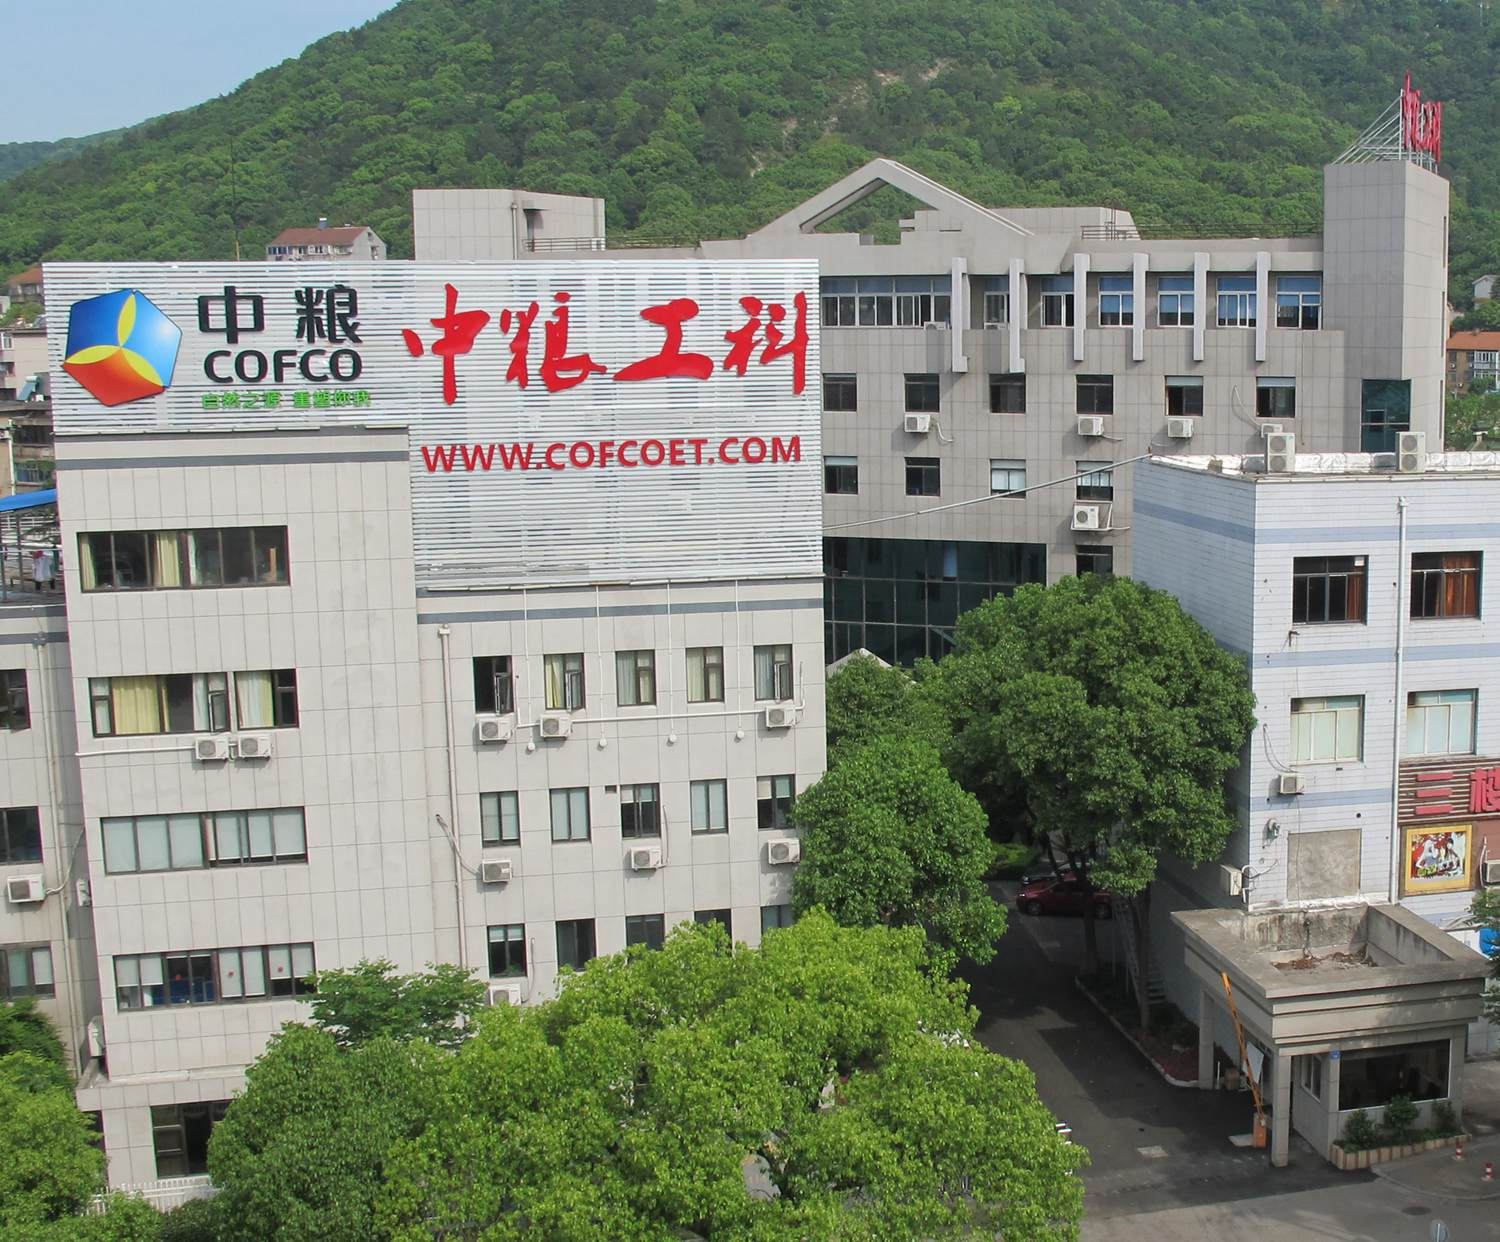 About COFCOET